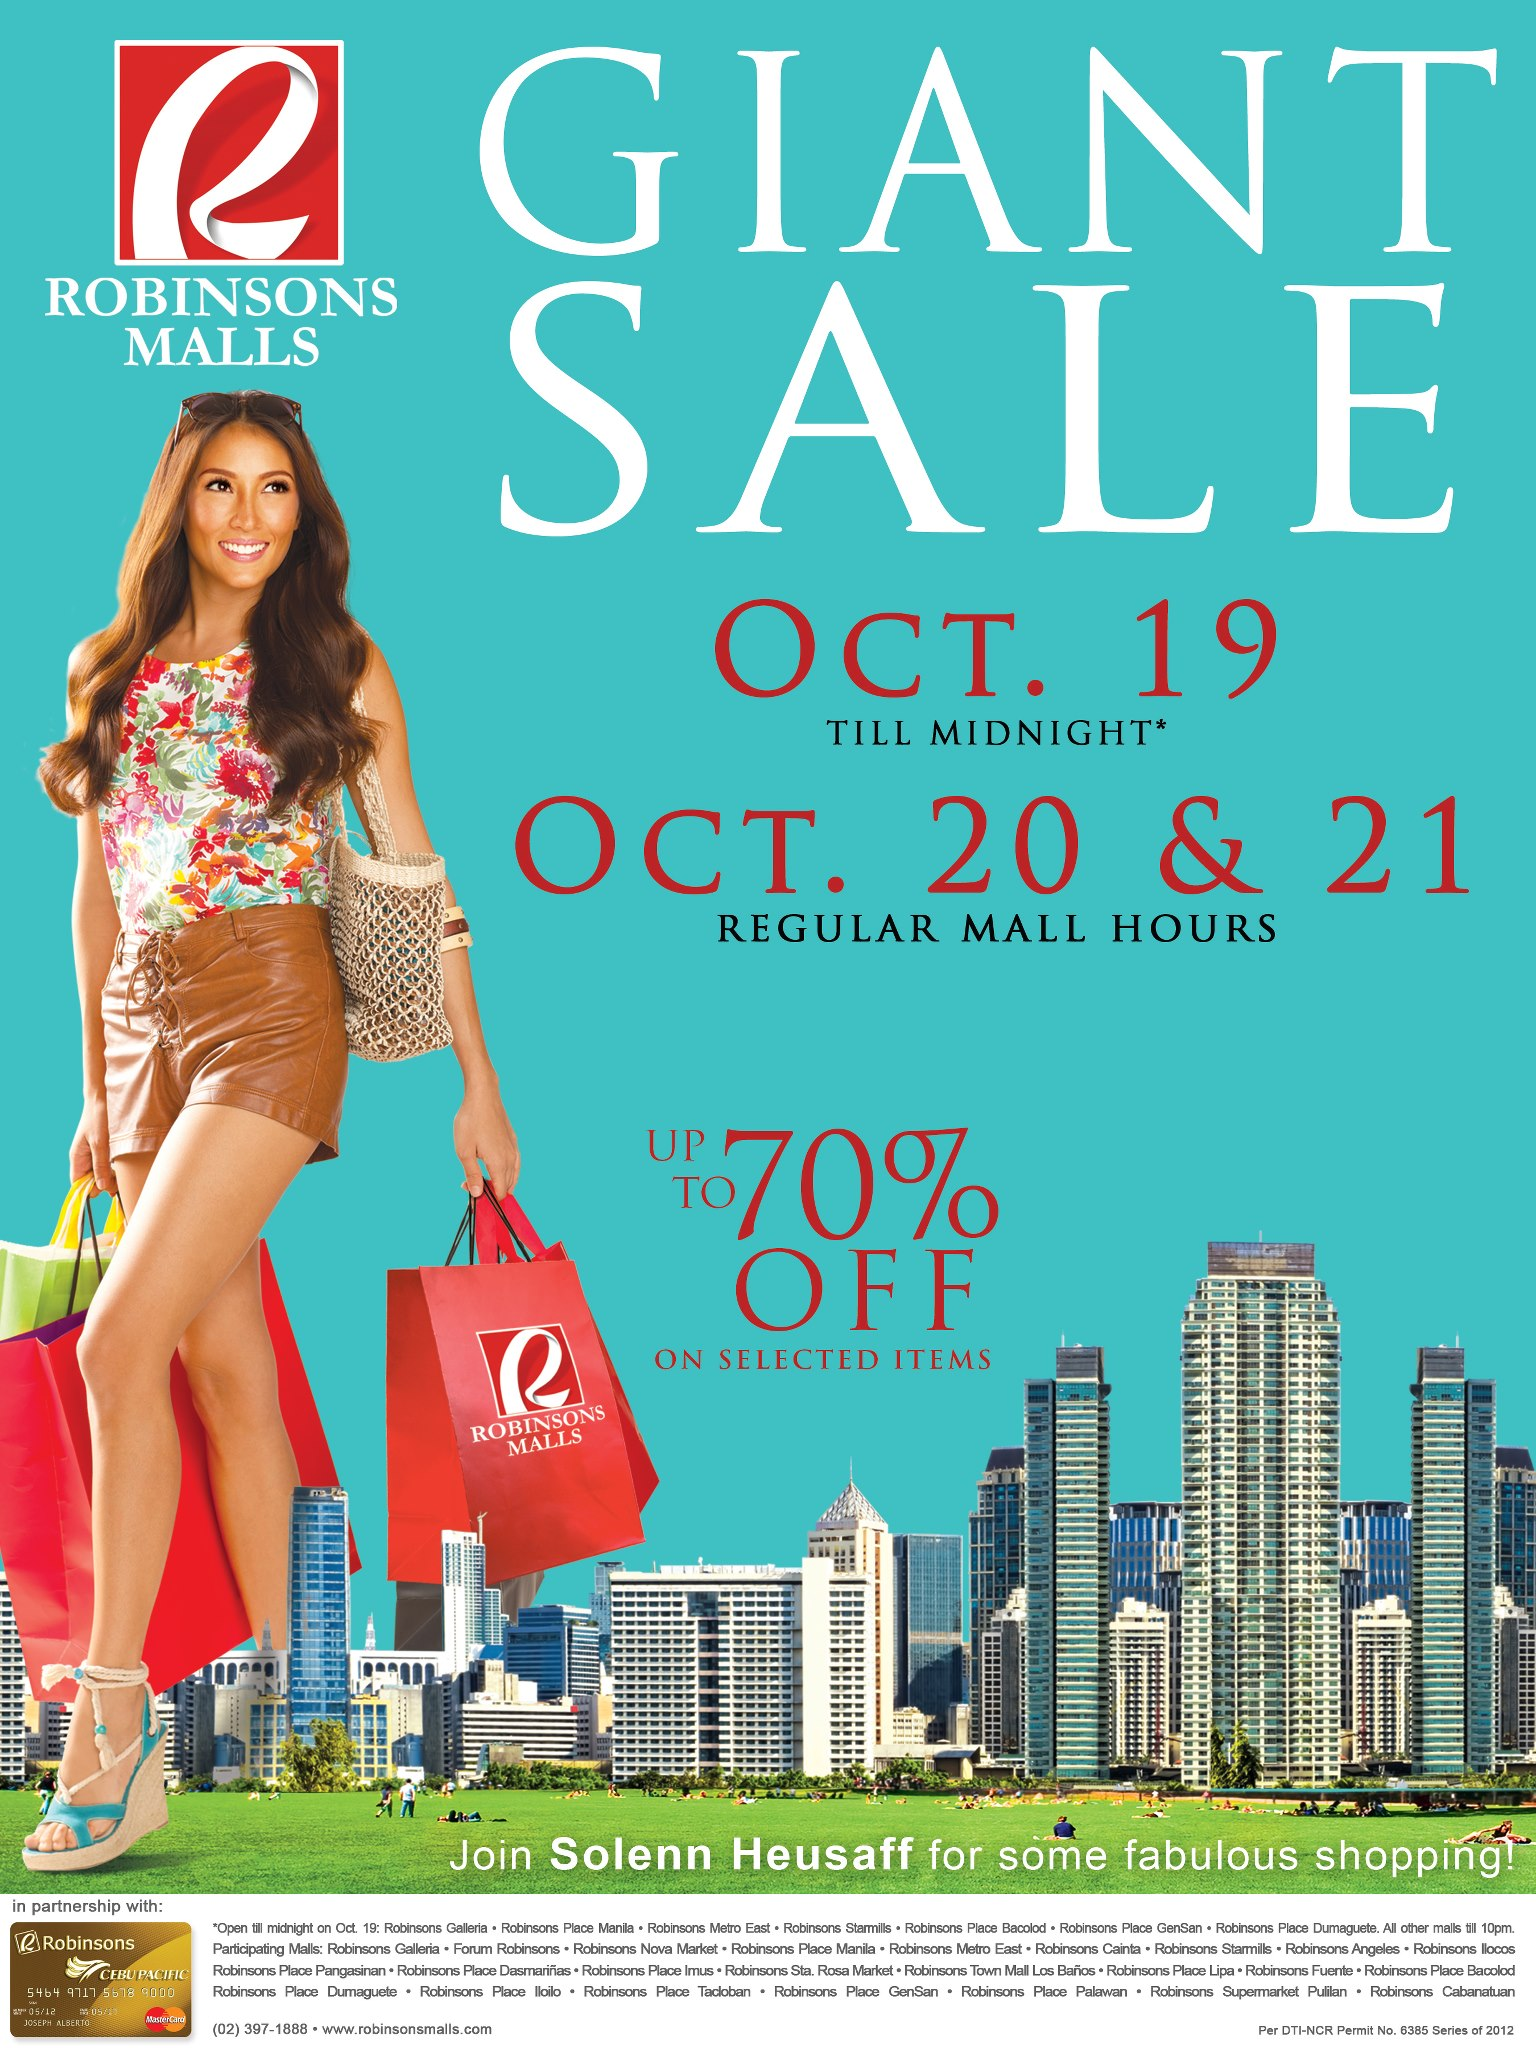 Robinsons Malls Giant Sale October 2012